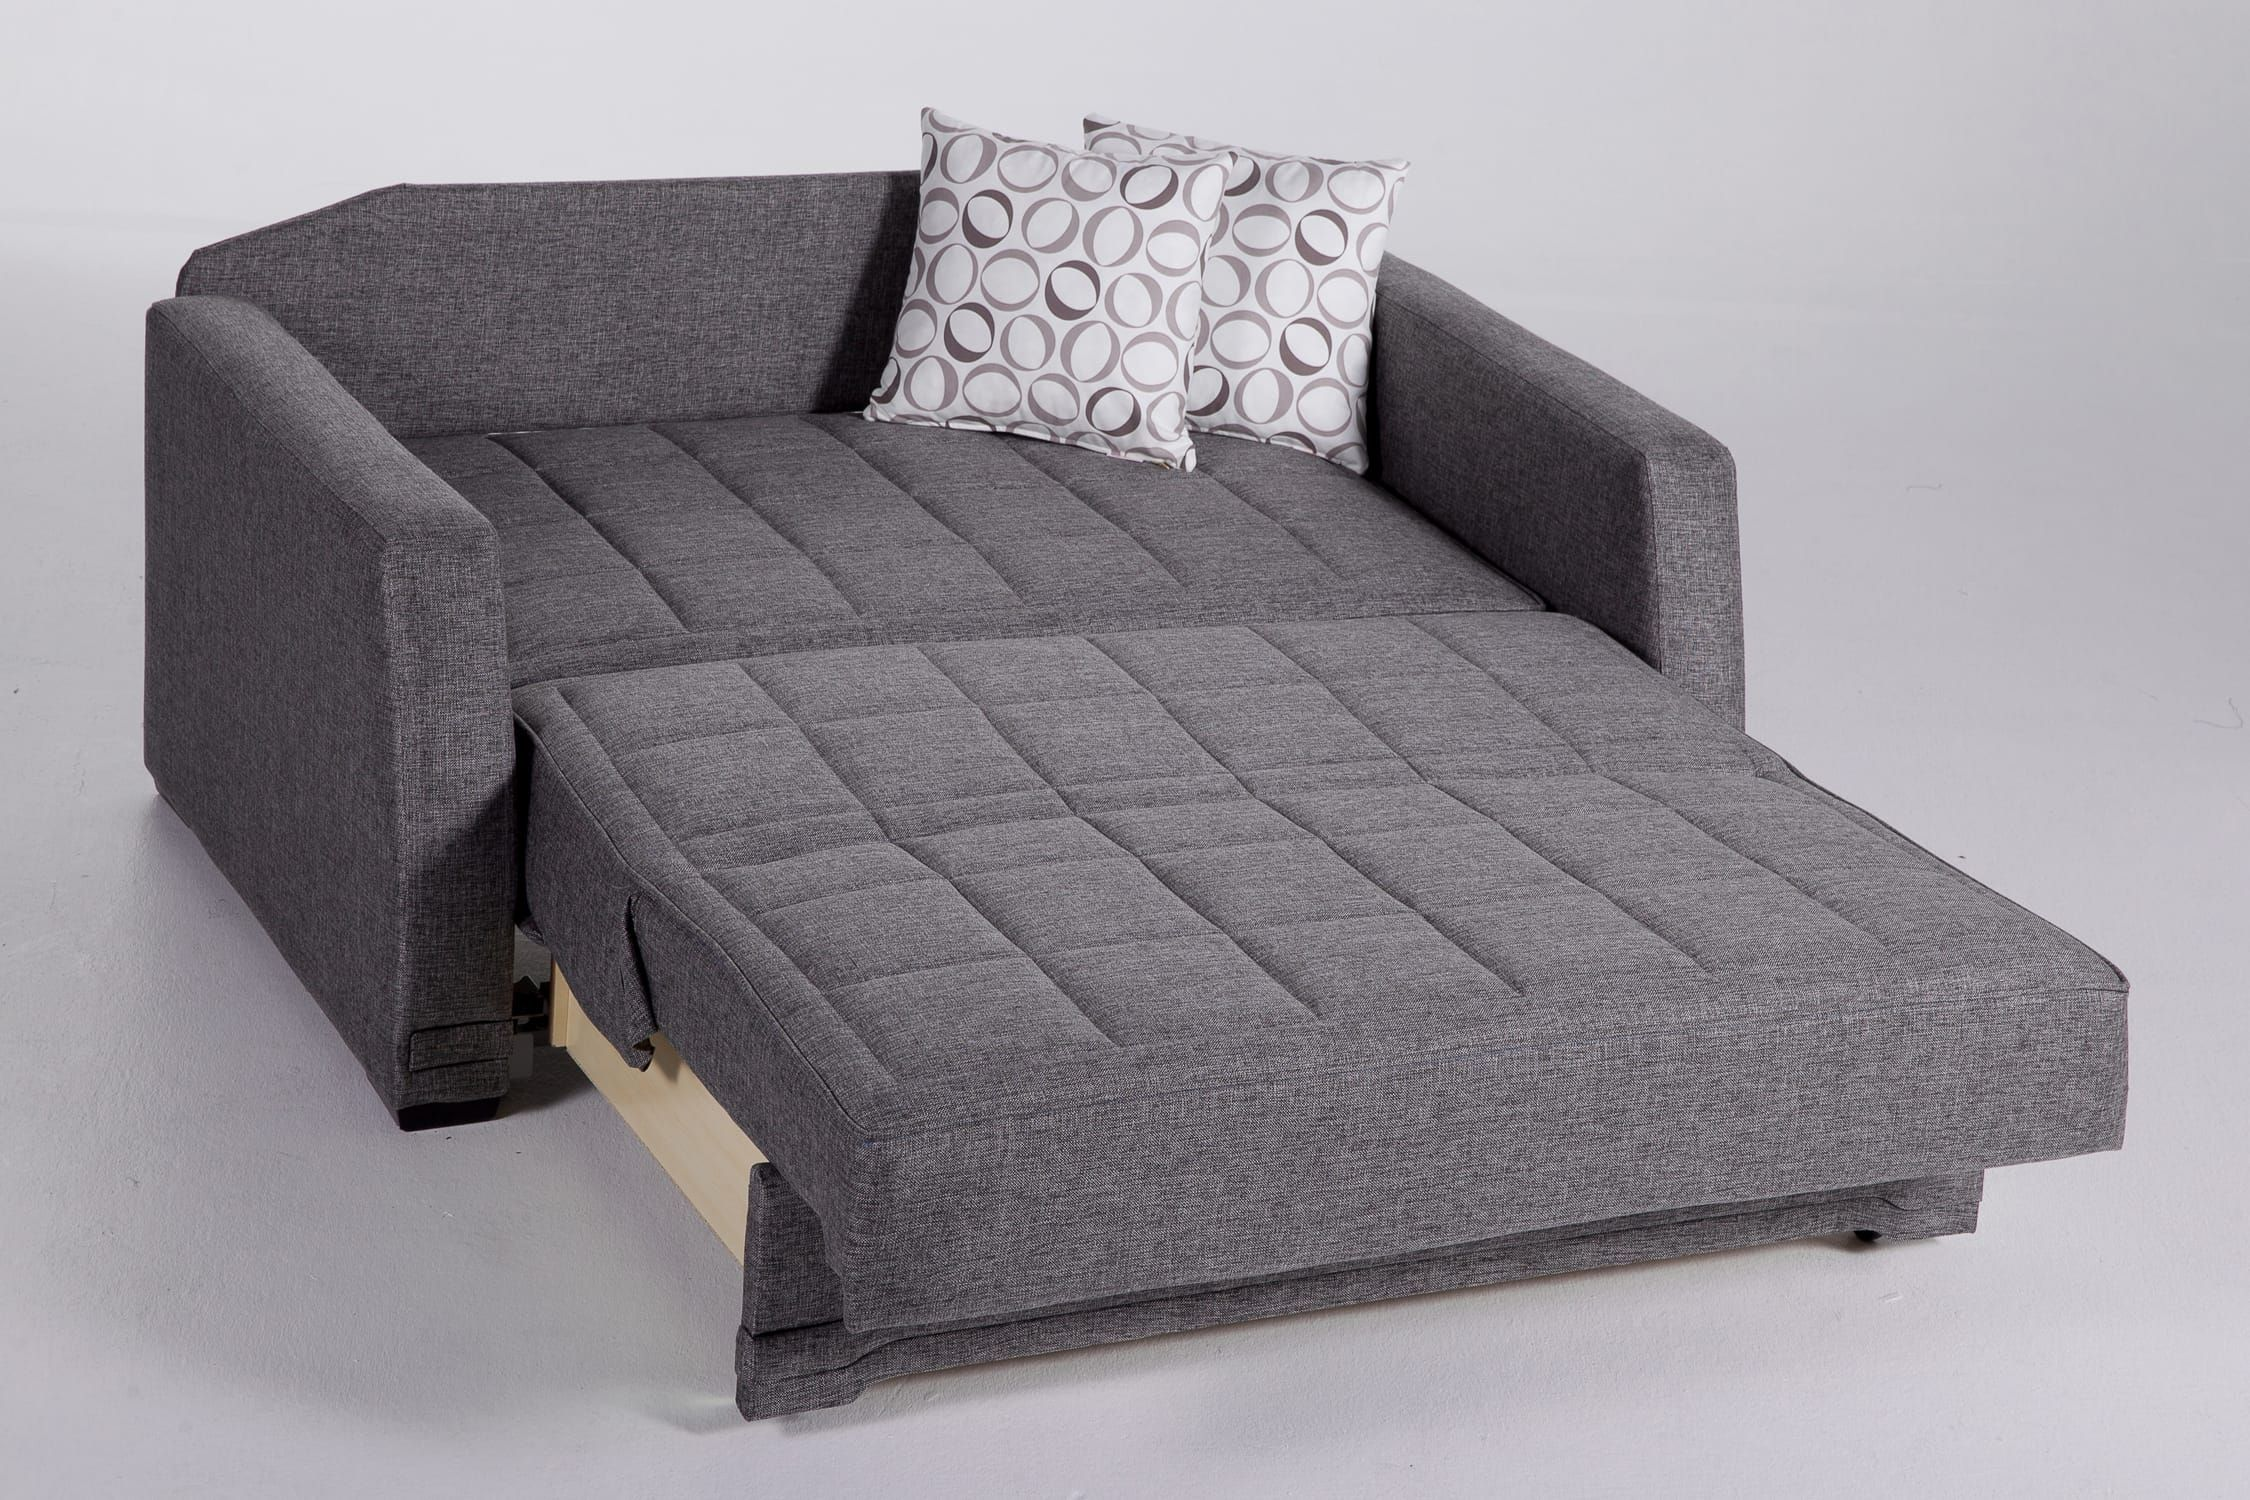 Valerie Diego Gray Loveseat Sleeper By Istikbal Furniture Sofa Bed With Storage Loveseat Sleeper Convertible Sofa Bed